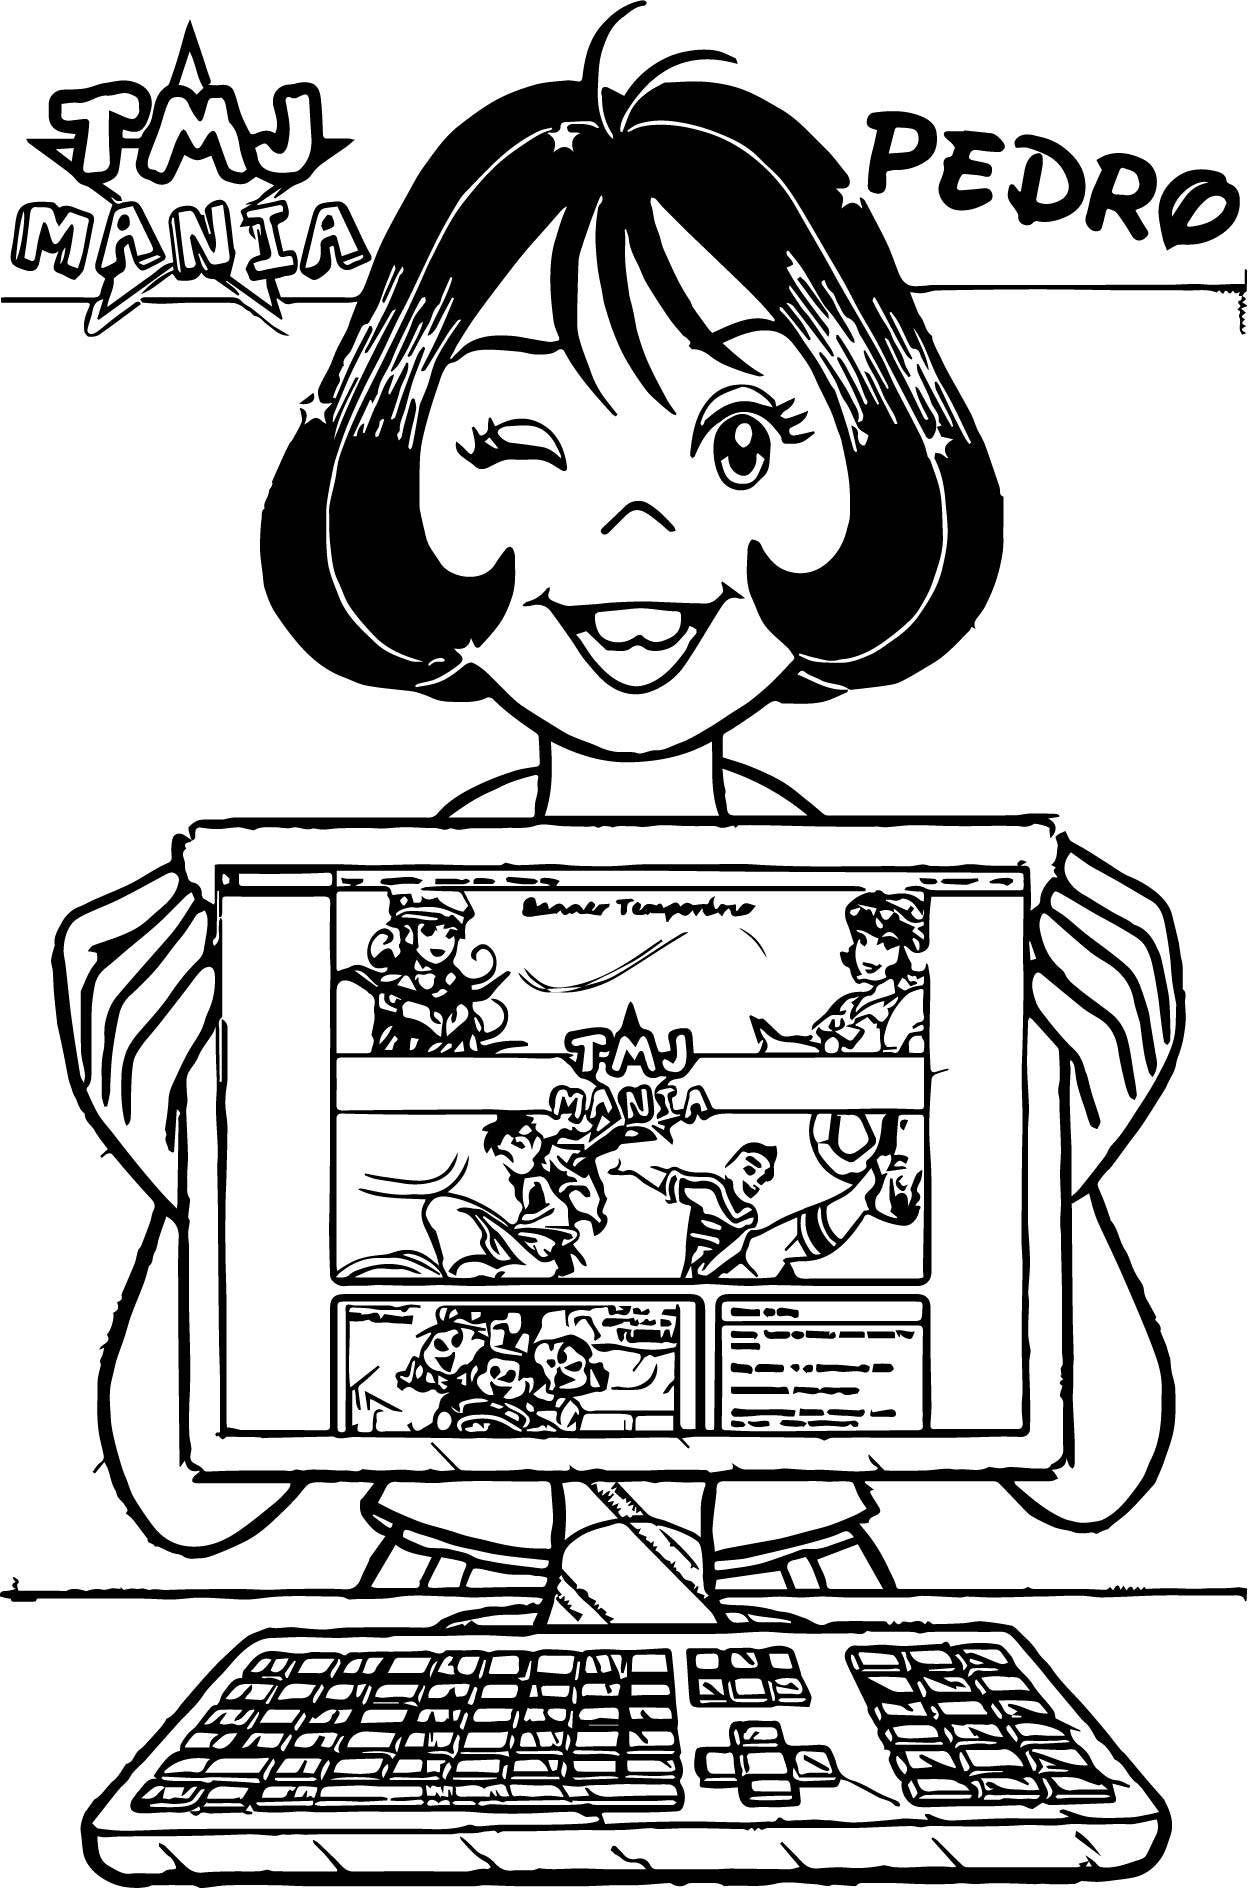 Monica TMJ Mania Picture Computer Coloring Page